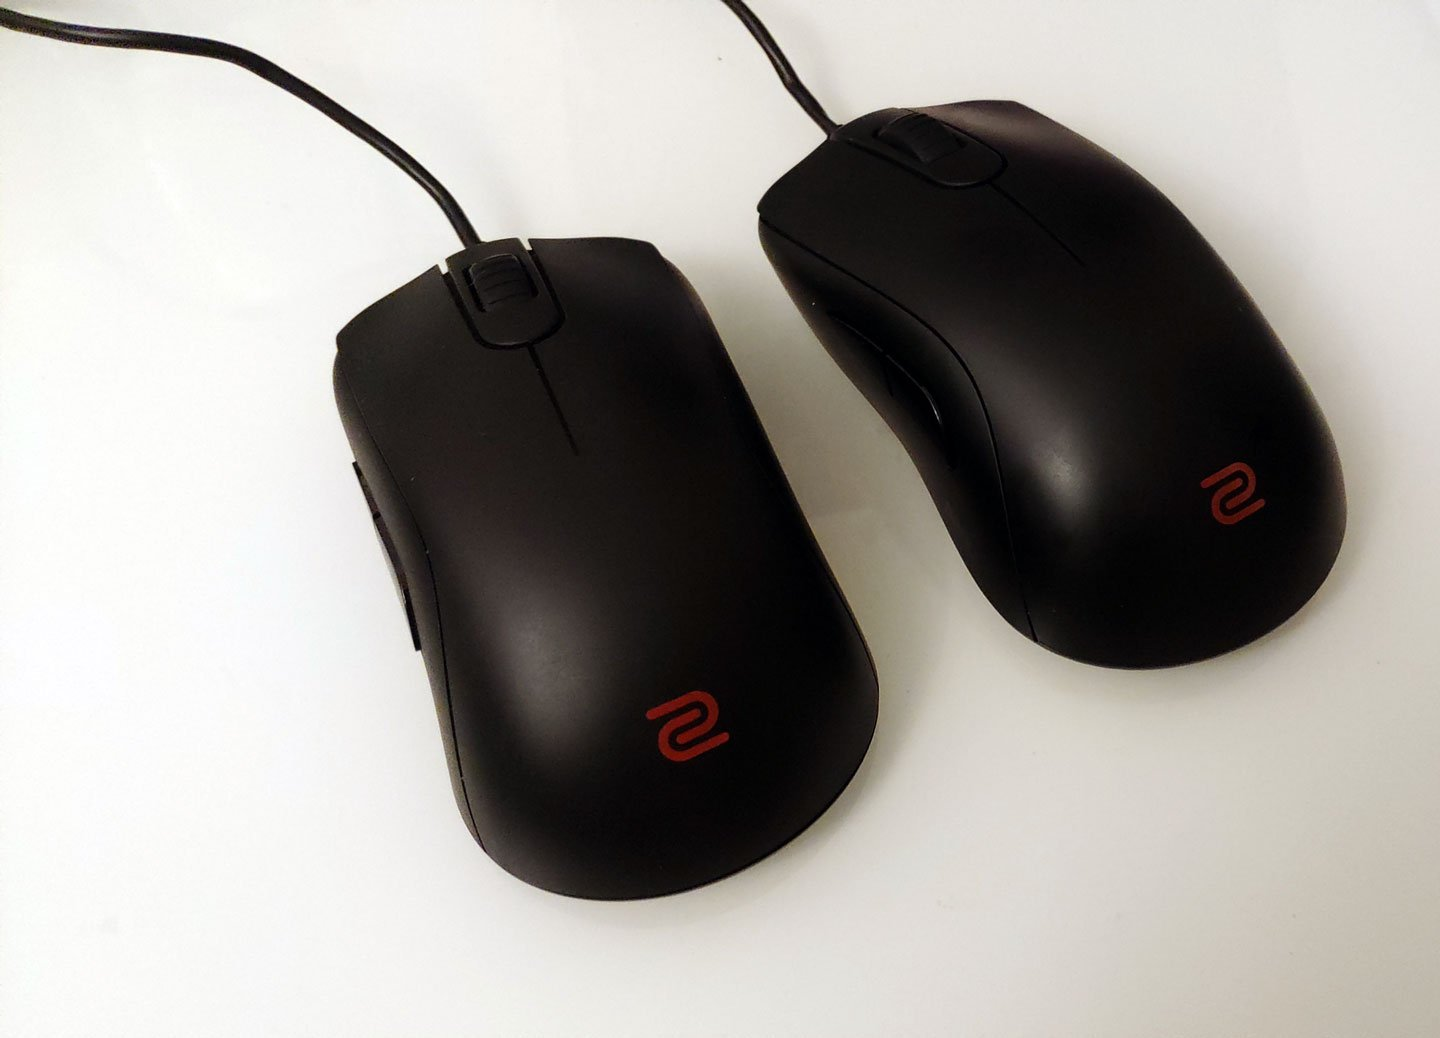 Review: BenQ Zowie S1 & S2 Gaming Mouse